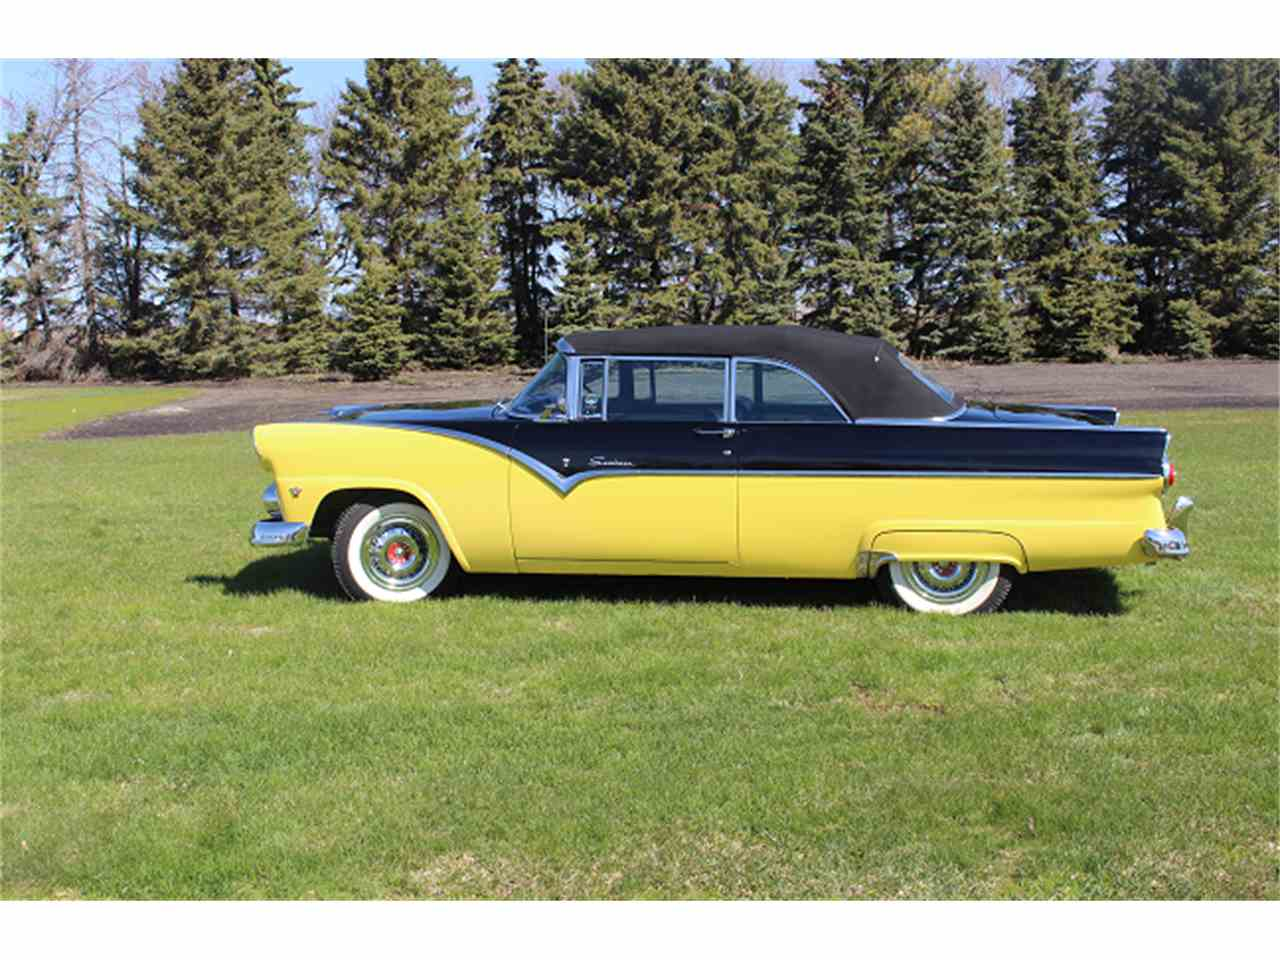 1955 Ford Fairlane Sunliner for Sale | ClassicCars.com | CC-980726